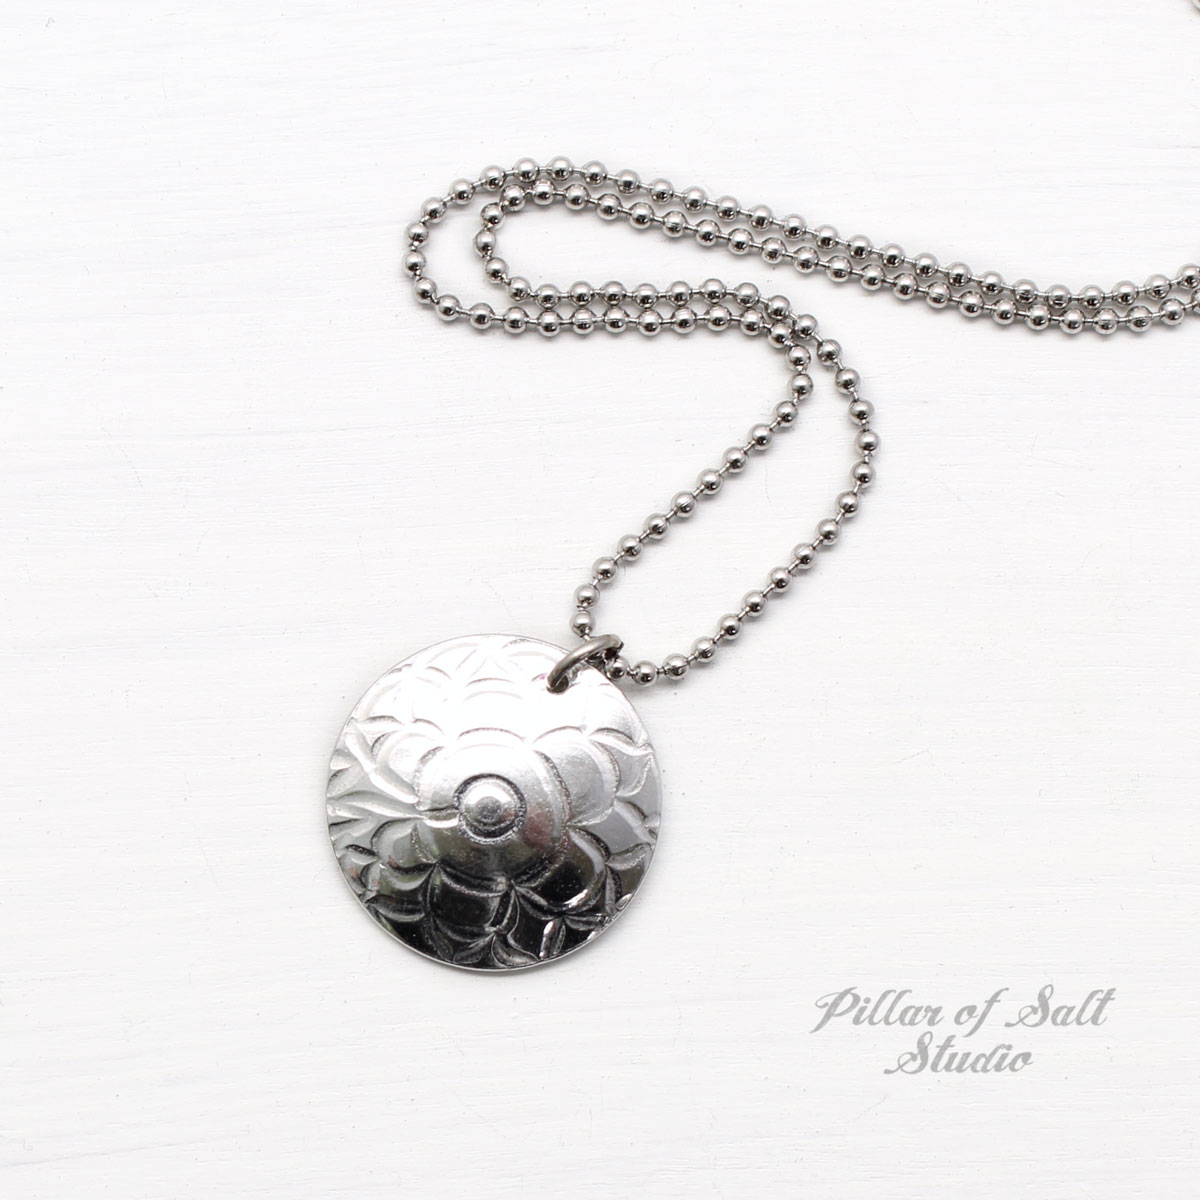 shiny, small textured aluminum disc with stainless steel ball chain.